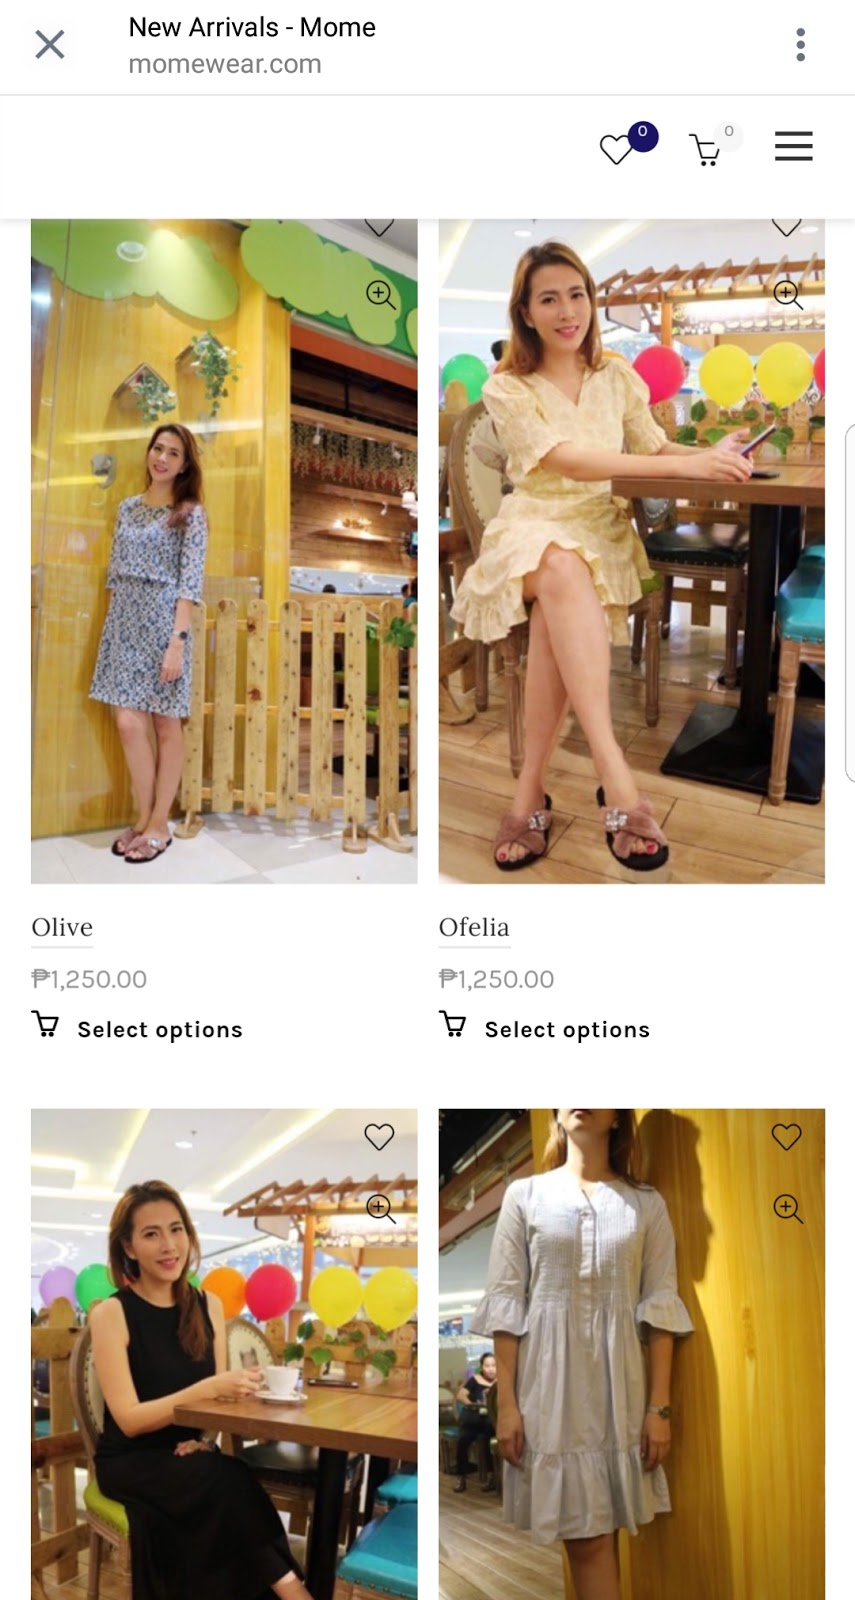 c5821f510d89d You really don't need to spend much on maternity wear. There is a lot of  good but affordable brands especially local ones. One of them is Mome.